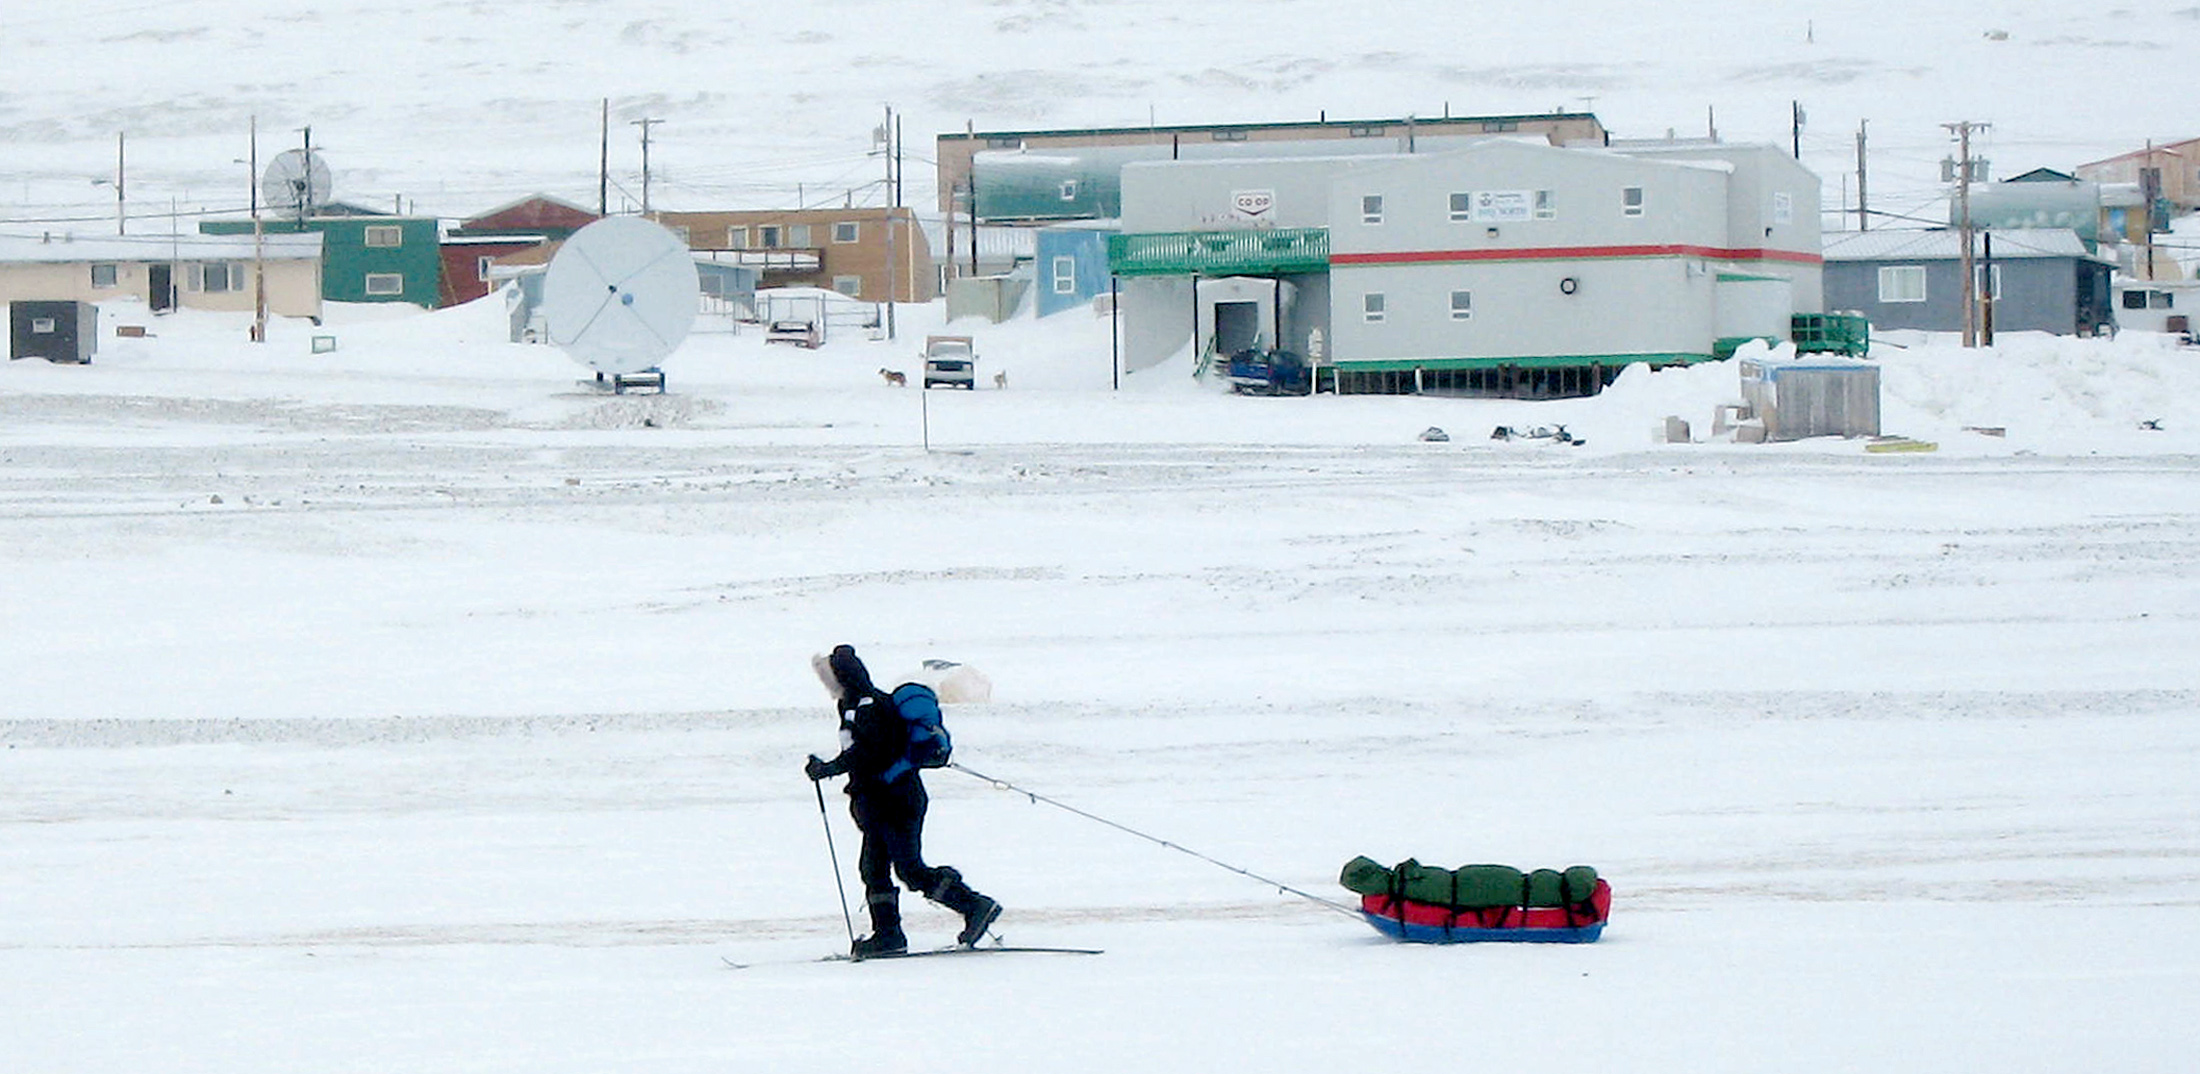 A man on skis travels across frozen sea past the Canadian Arctic settlement of Resolute Bay, Nunavut April 9, 2006. The settlement was founded in 1953 when the Canadian government dumped 14 aboriginal Inuit people on the frozen, stony beach. The Inuit say Ottawa tricked them into moving and some want an apology for the way they were treated. Picture taken April 9, 2006.   To match feature CANADA RELOCATION    REUTERS/David Ljunggren - GM1DSKUVBPAA